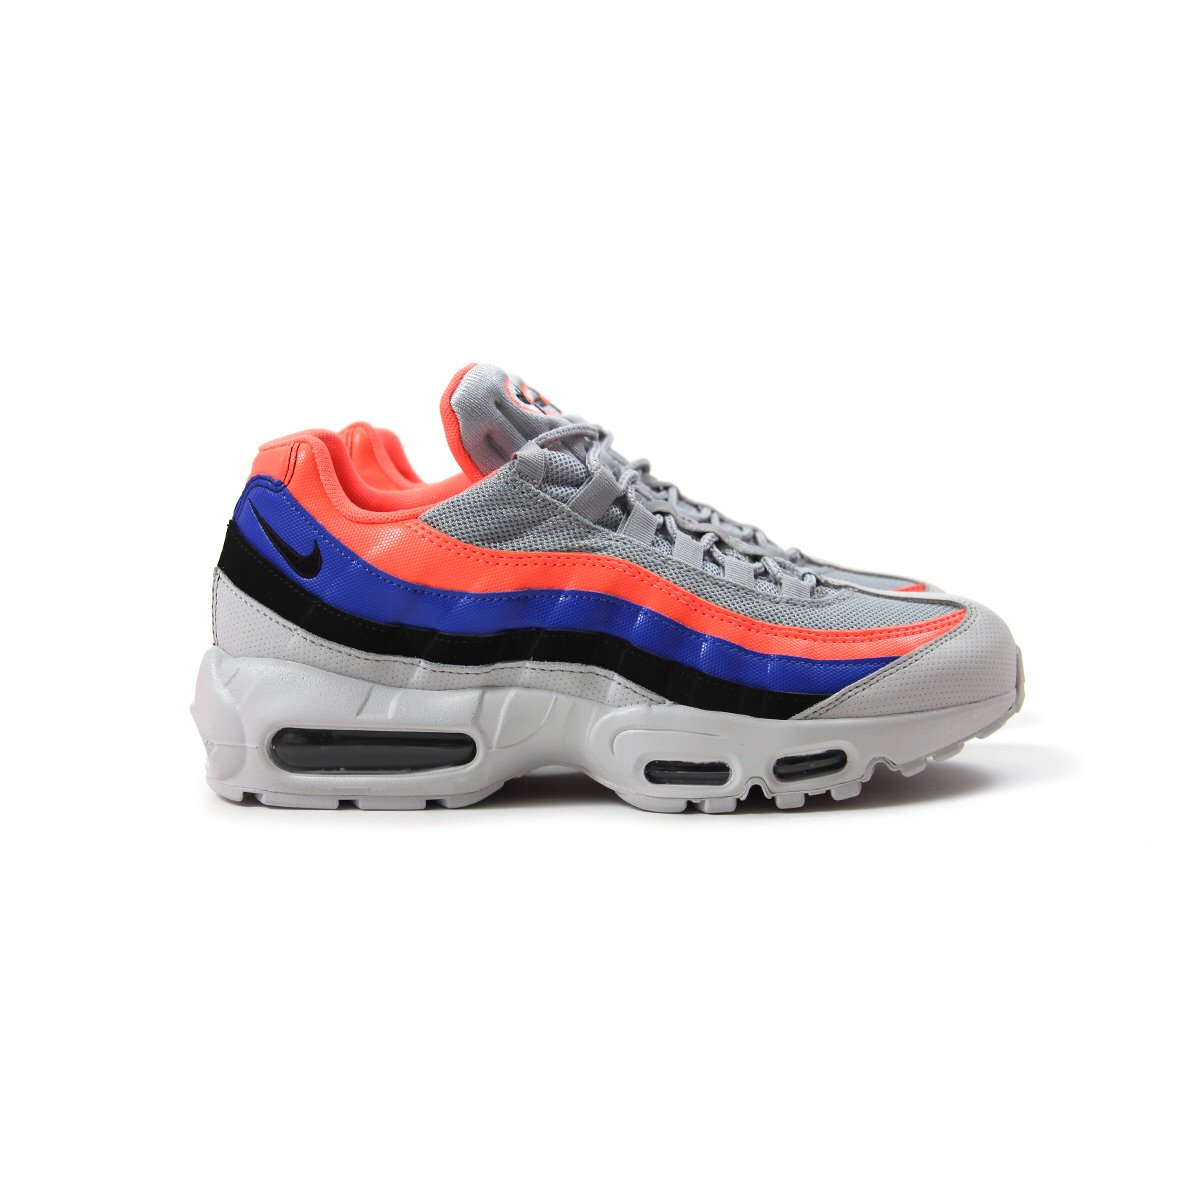 Concepts On Twitter Nike Air Max 95 Essential Pure Platinum